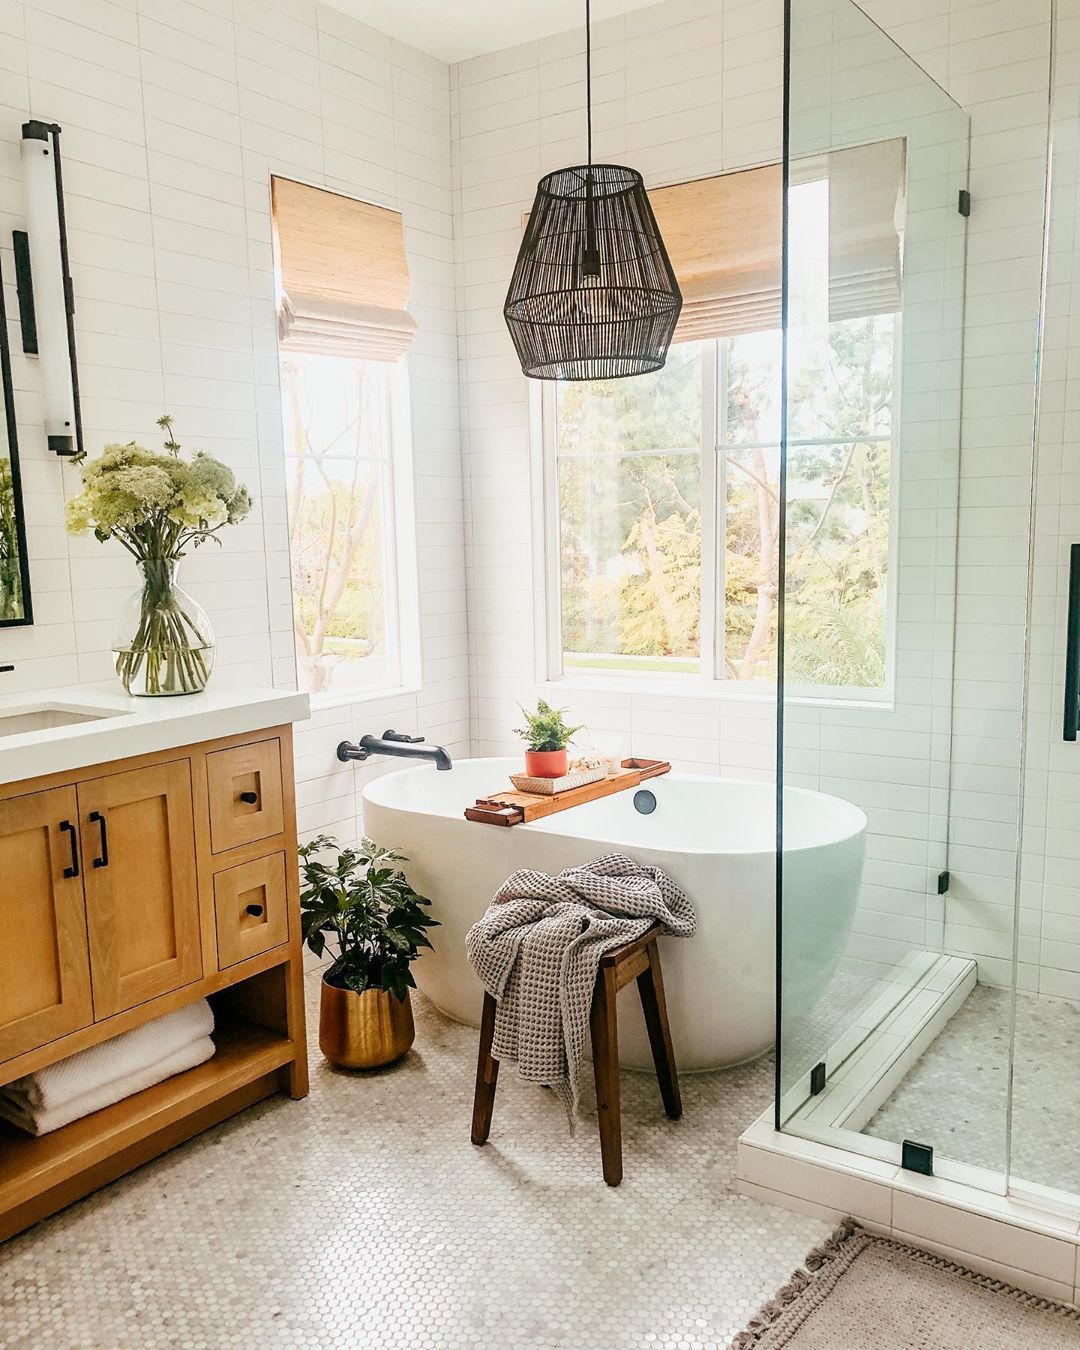 California Casual Bathroom In 2020 Design Your Own Home Home Design Home App